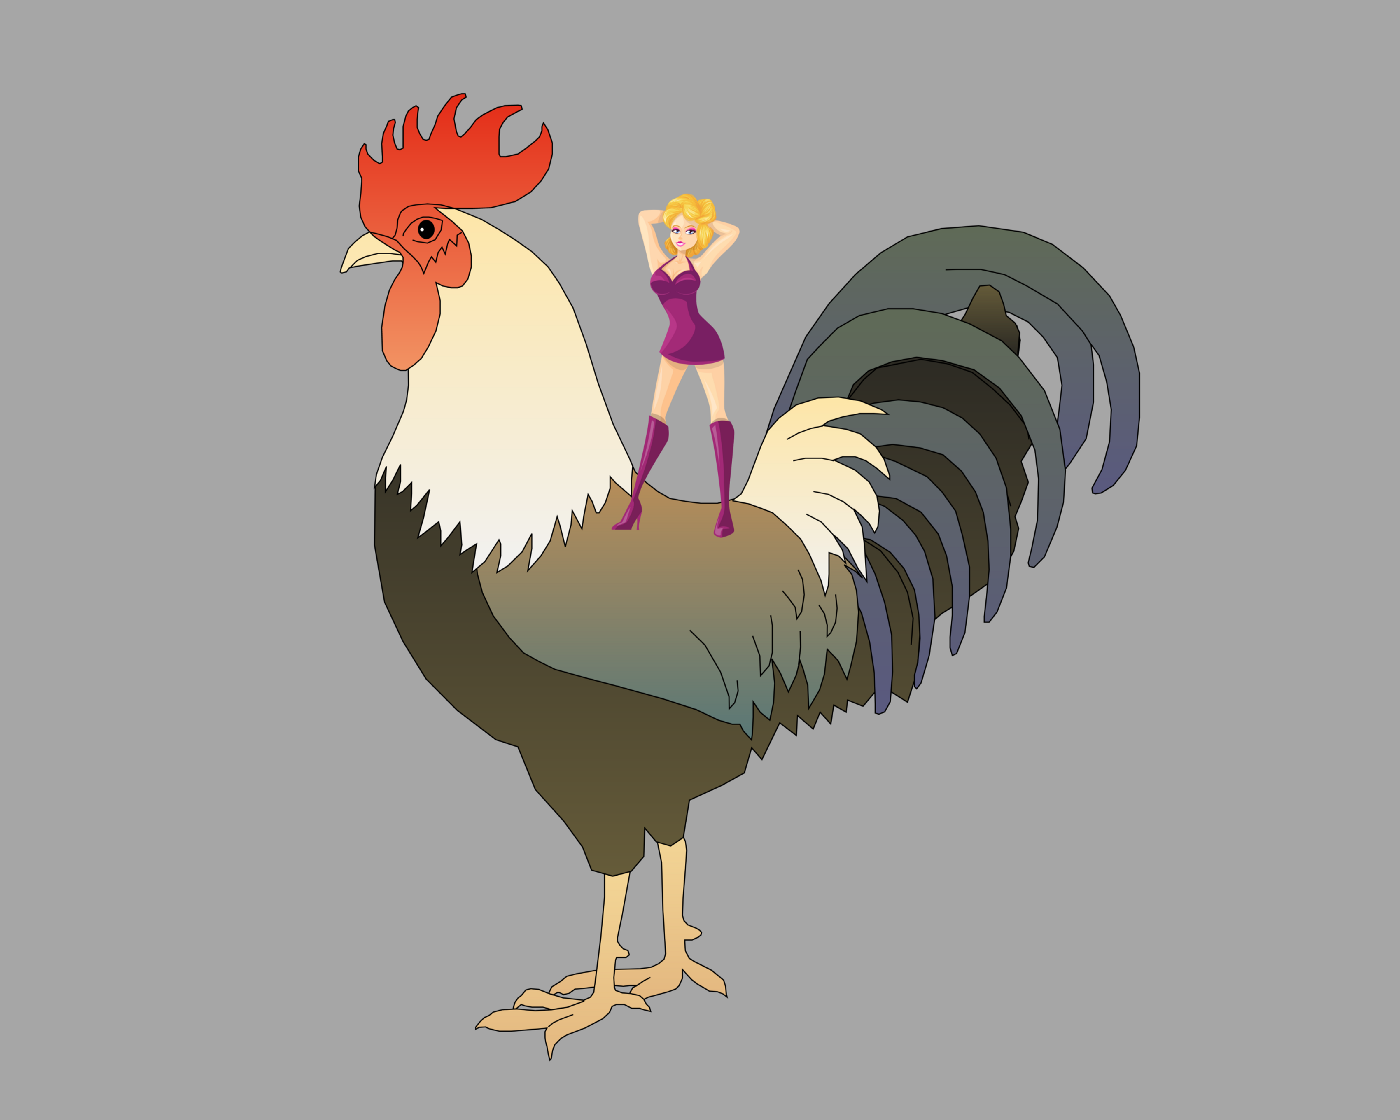 Woman standing on giant rooster